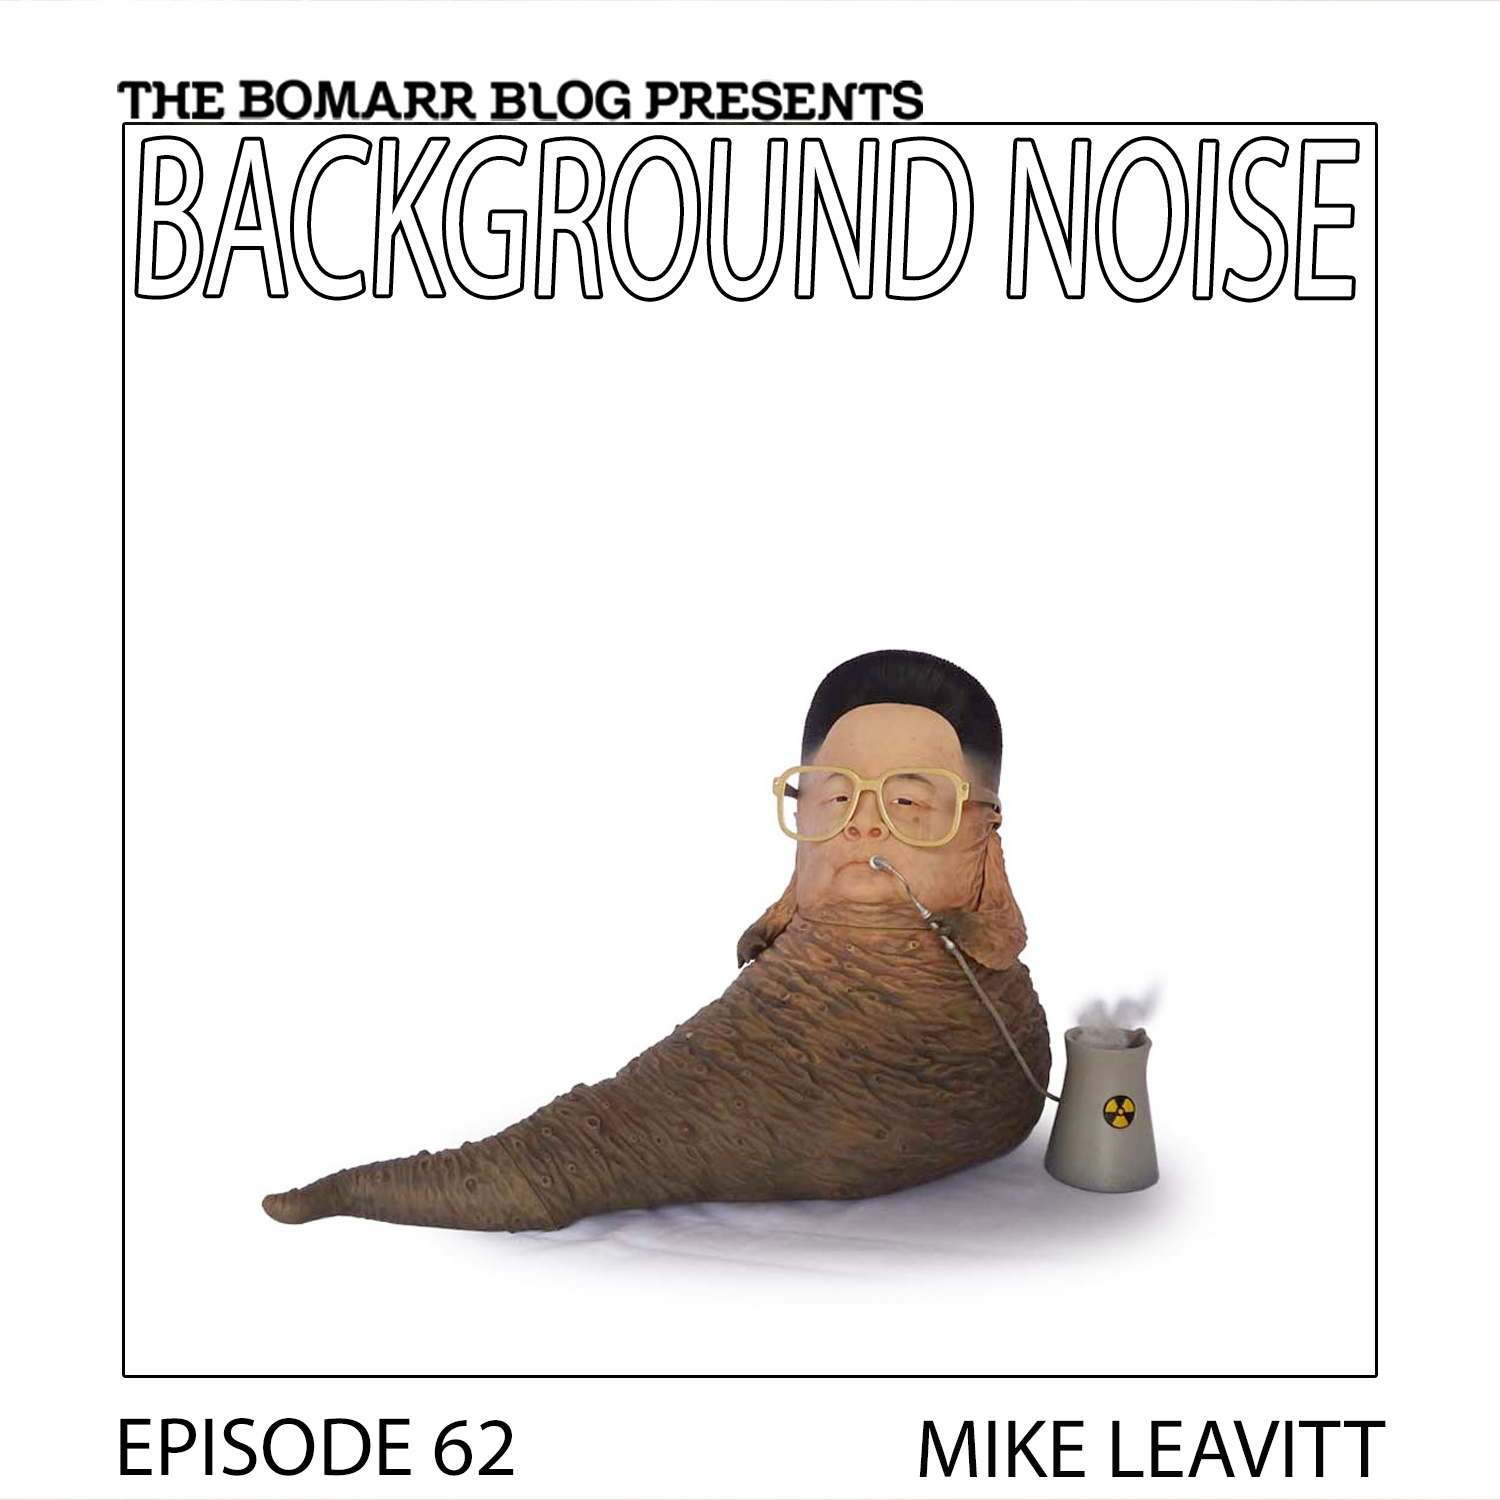 THE BACKGROUND NOISE PODCAST SERIES FOCUSES ON THE MUSIC THAT ARTISTS LISTEN TO WHEN THEY WORK, WHAT MUSIC INSPIRES THEM, OR JUST MUSIC THEY LIKE. THIS WEEK, IN EPISODE 62, the focus is on artist mike leavitt